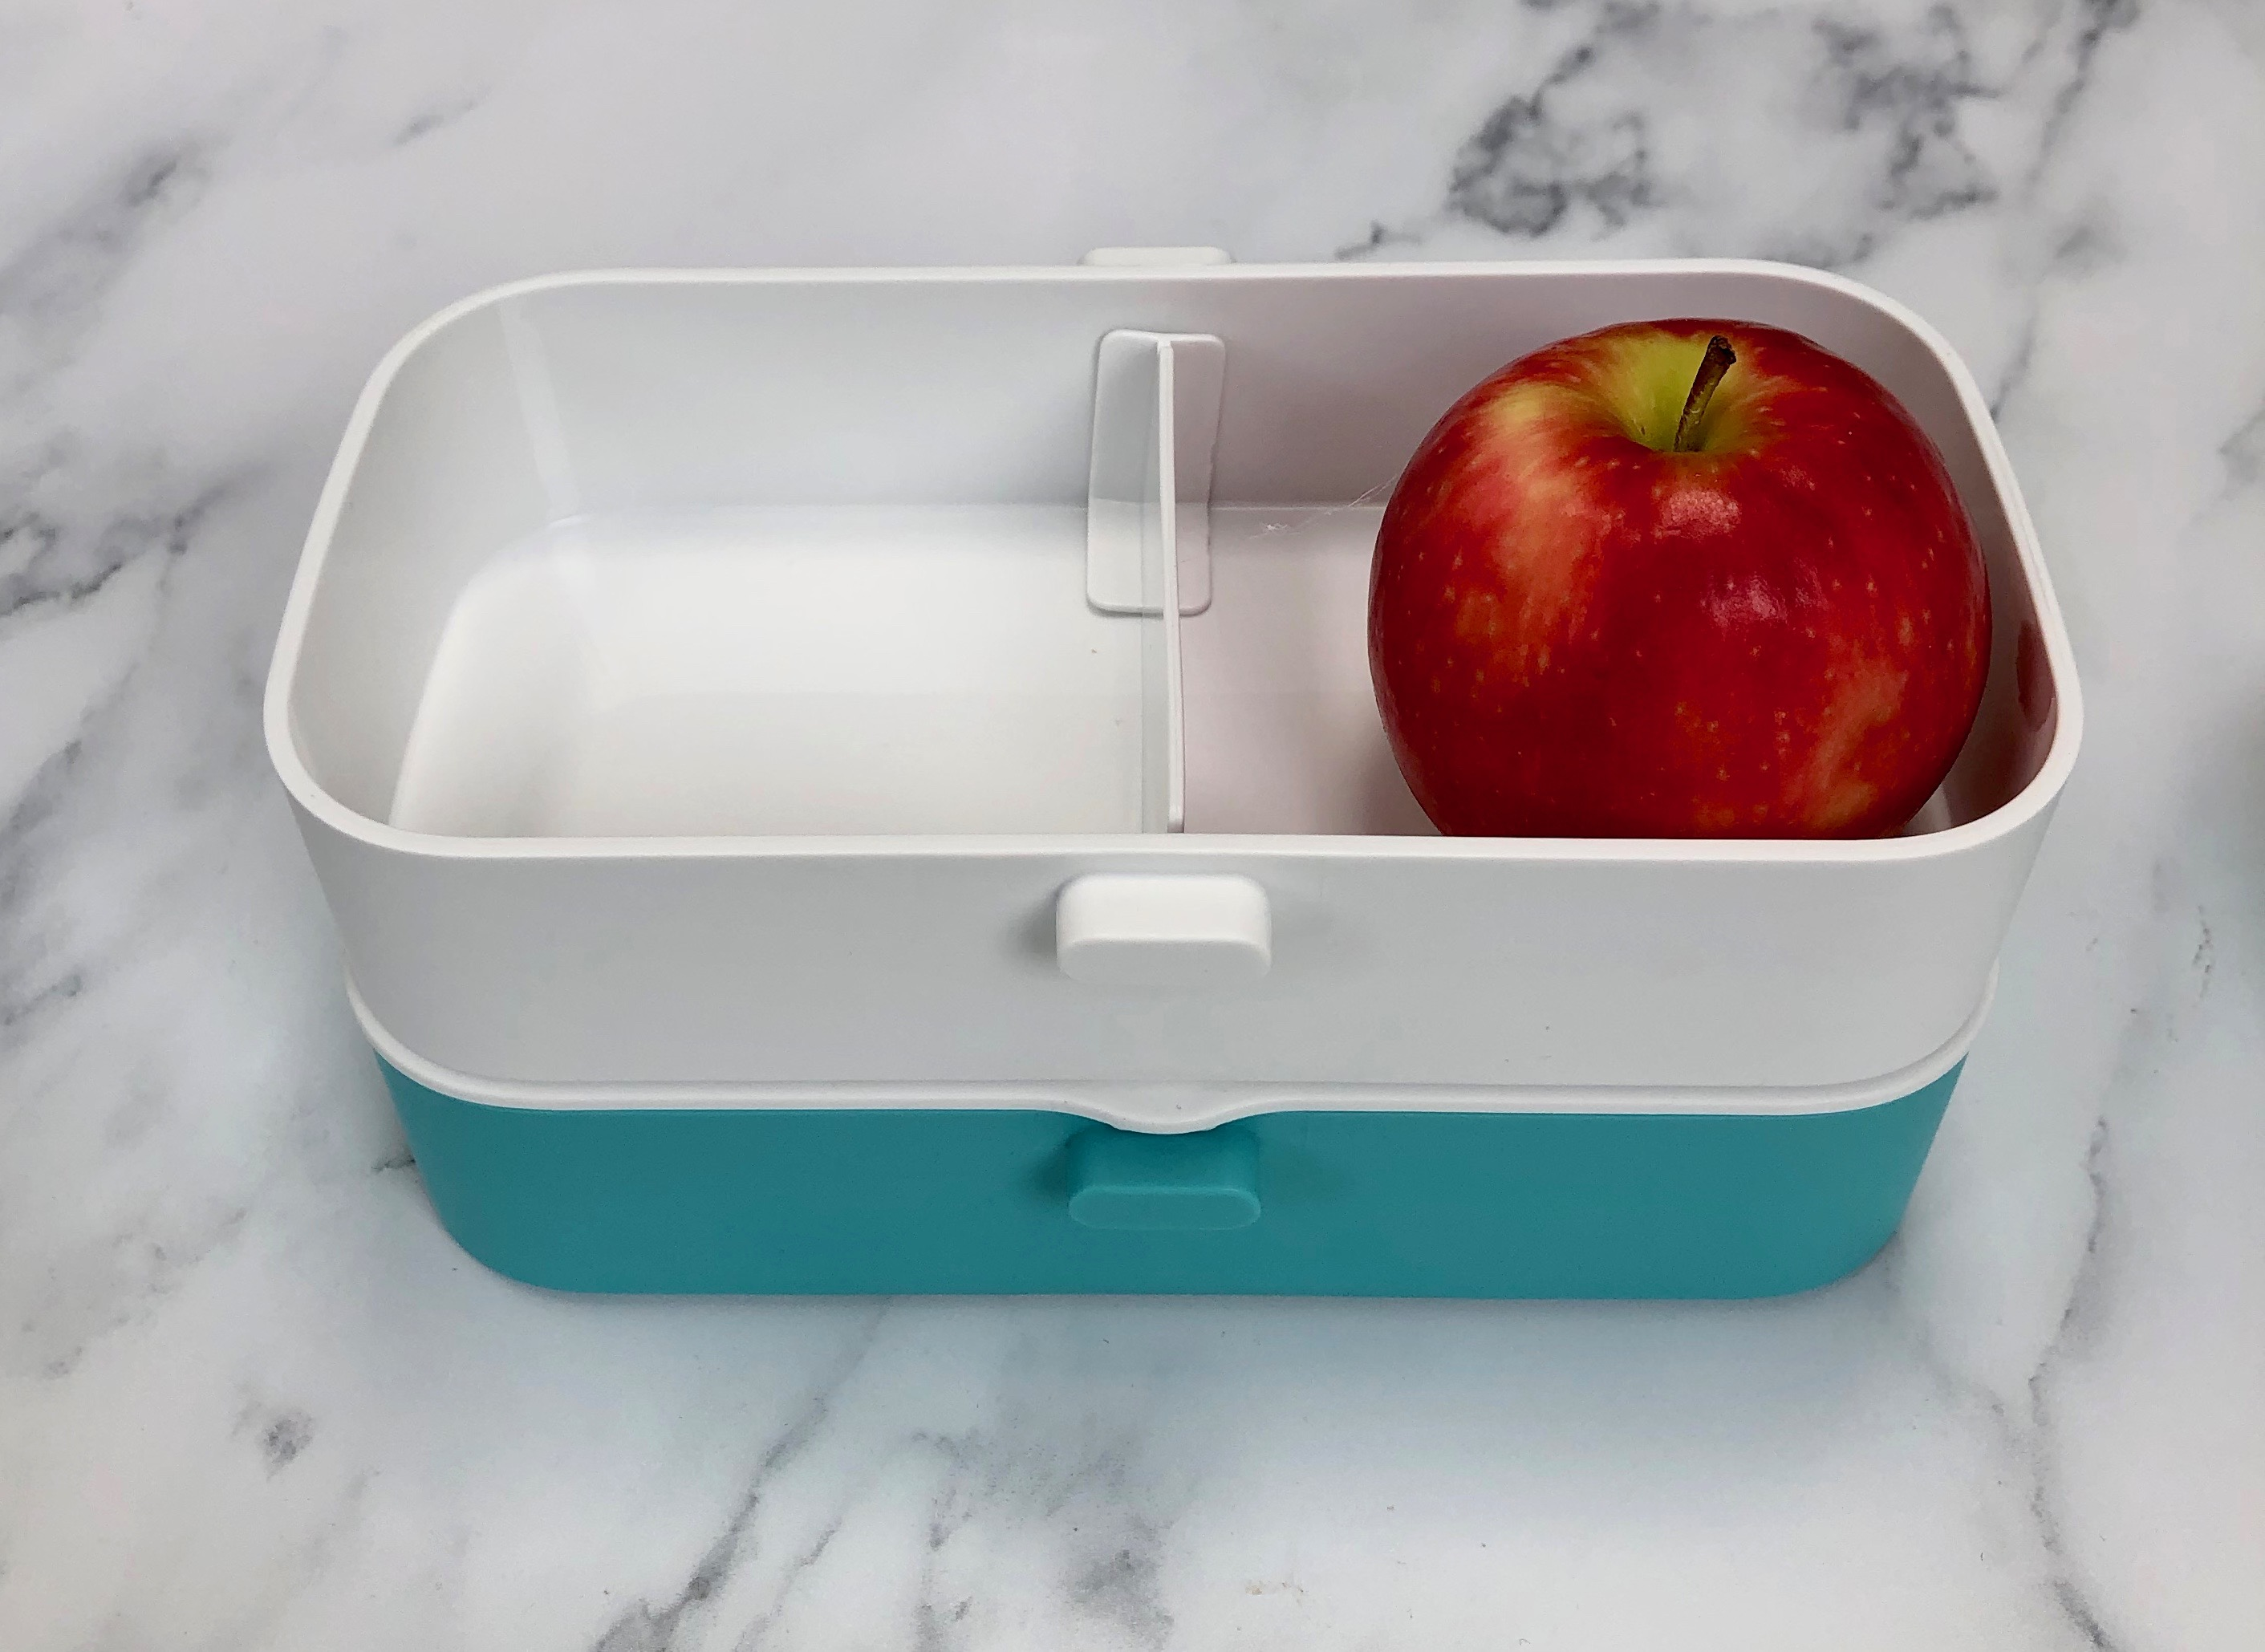 The 6 Best Reusable Lunch boxes of 2020